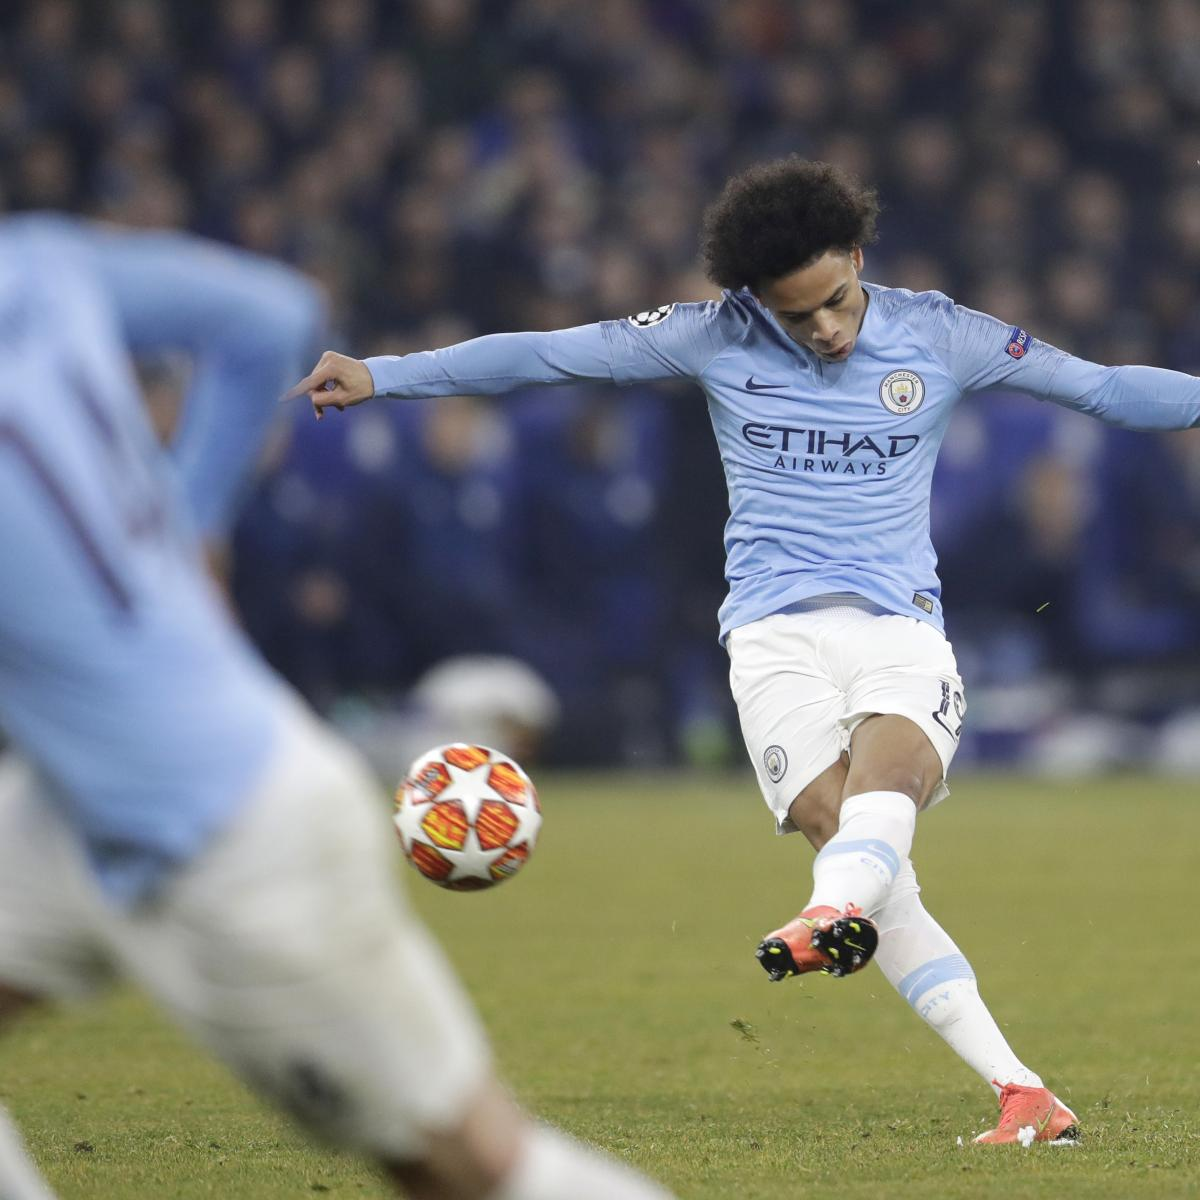 Champions League 2019 Round Of 16 Leg 2 Live Stream Tv: Manchester City Vs. Schalke: How To Watch, Schedule, Odds